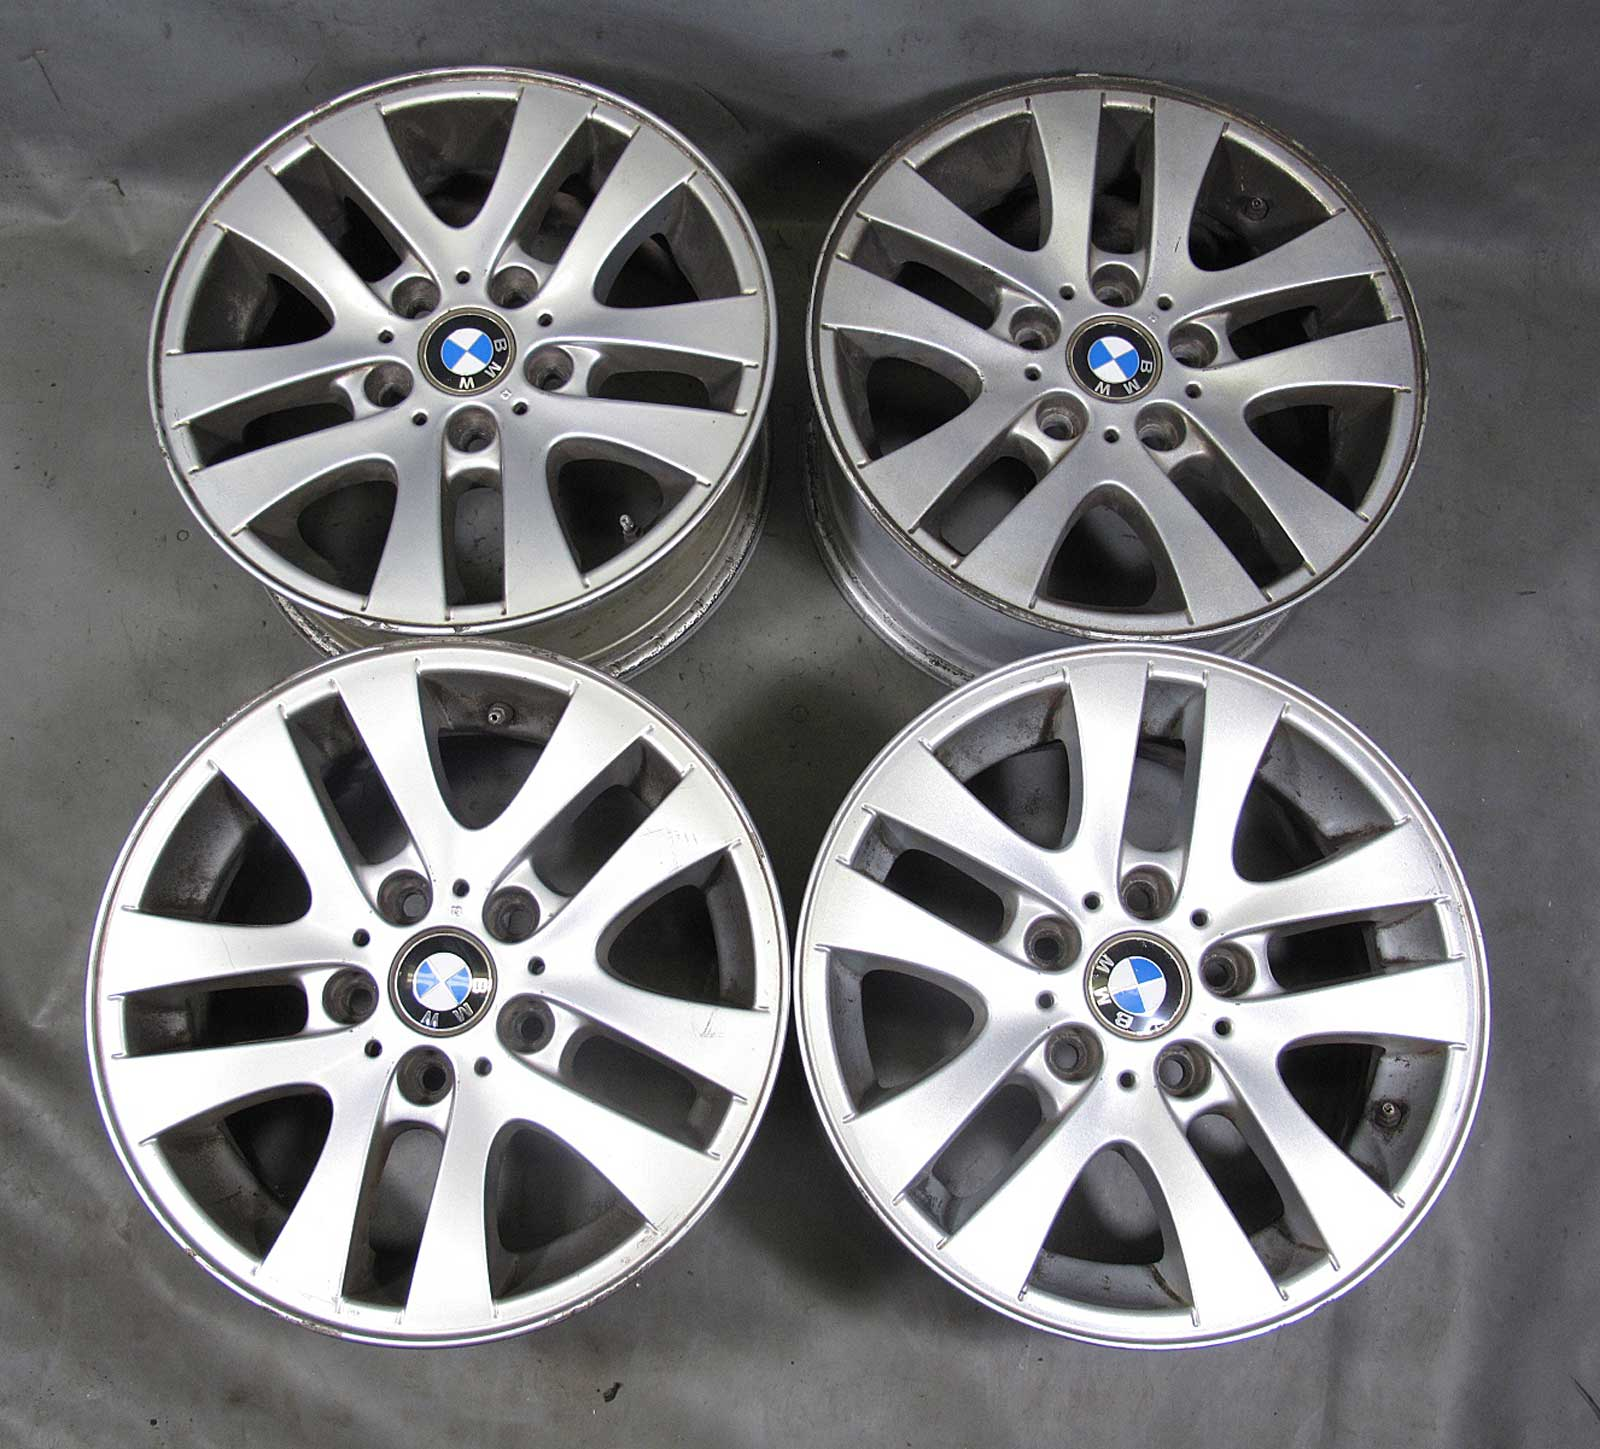 style showthread rim pics bmw dslr wheels here with forums rft styles some from performance dunlop are my